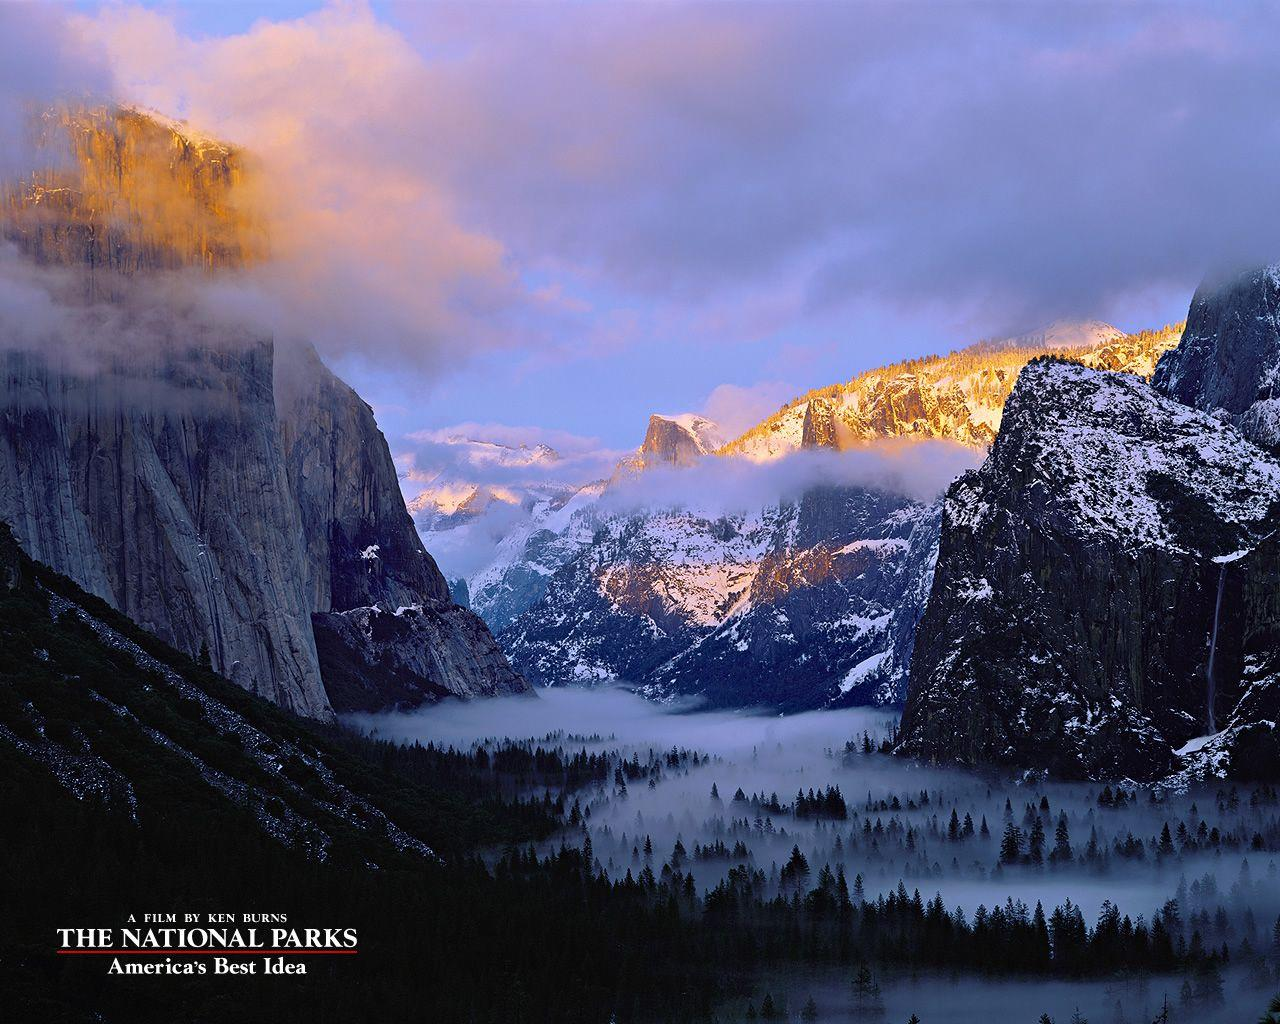 The National Parks: America's Best Idea: Download Wallpapers